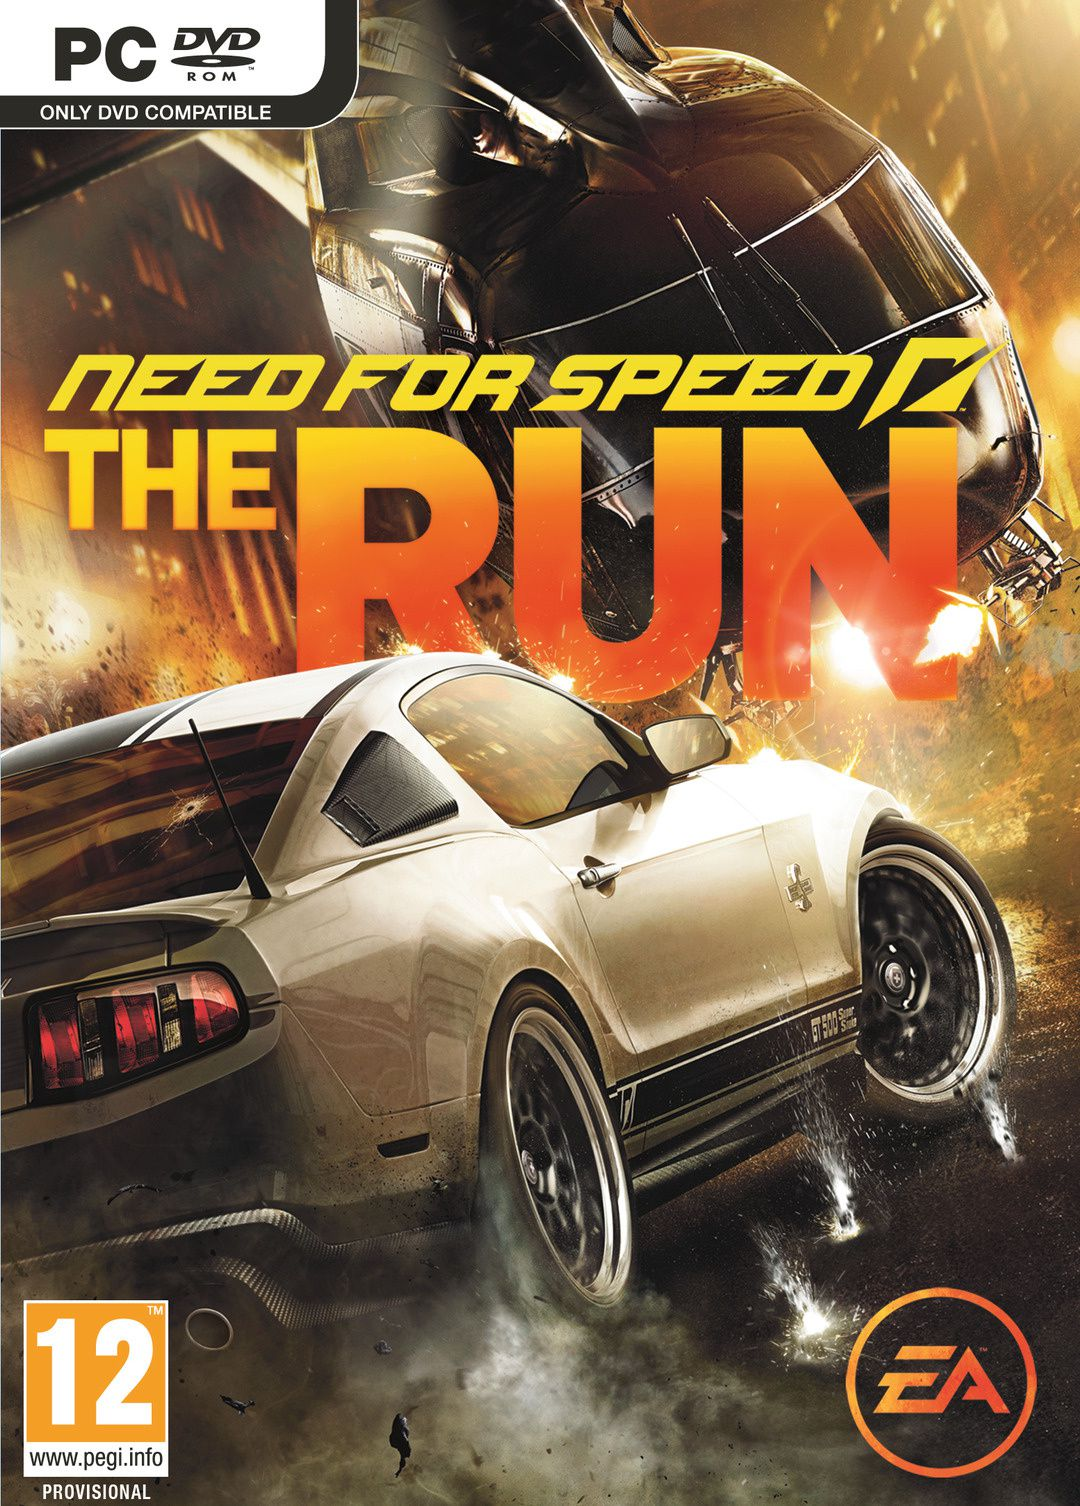 jaquette-need-for-speed-the-run-pc-cover-avant-g-1304085650.jpg